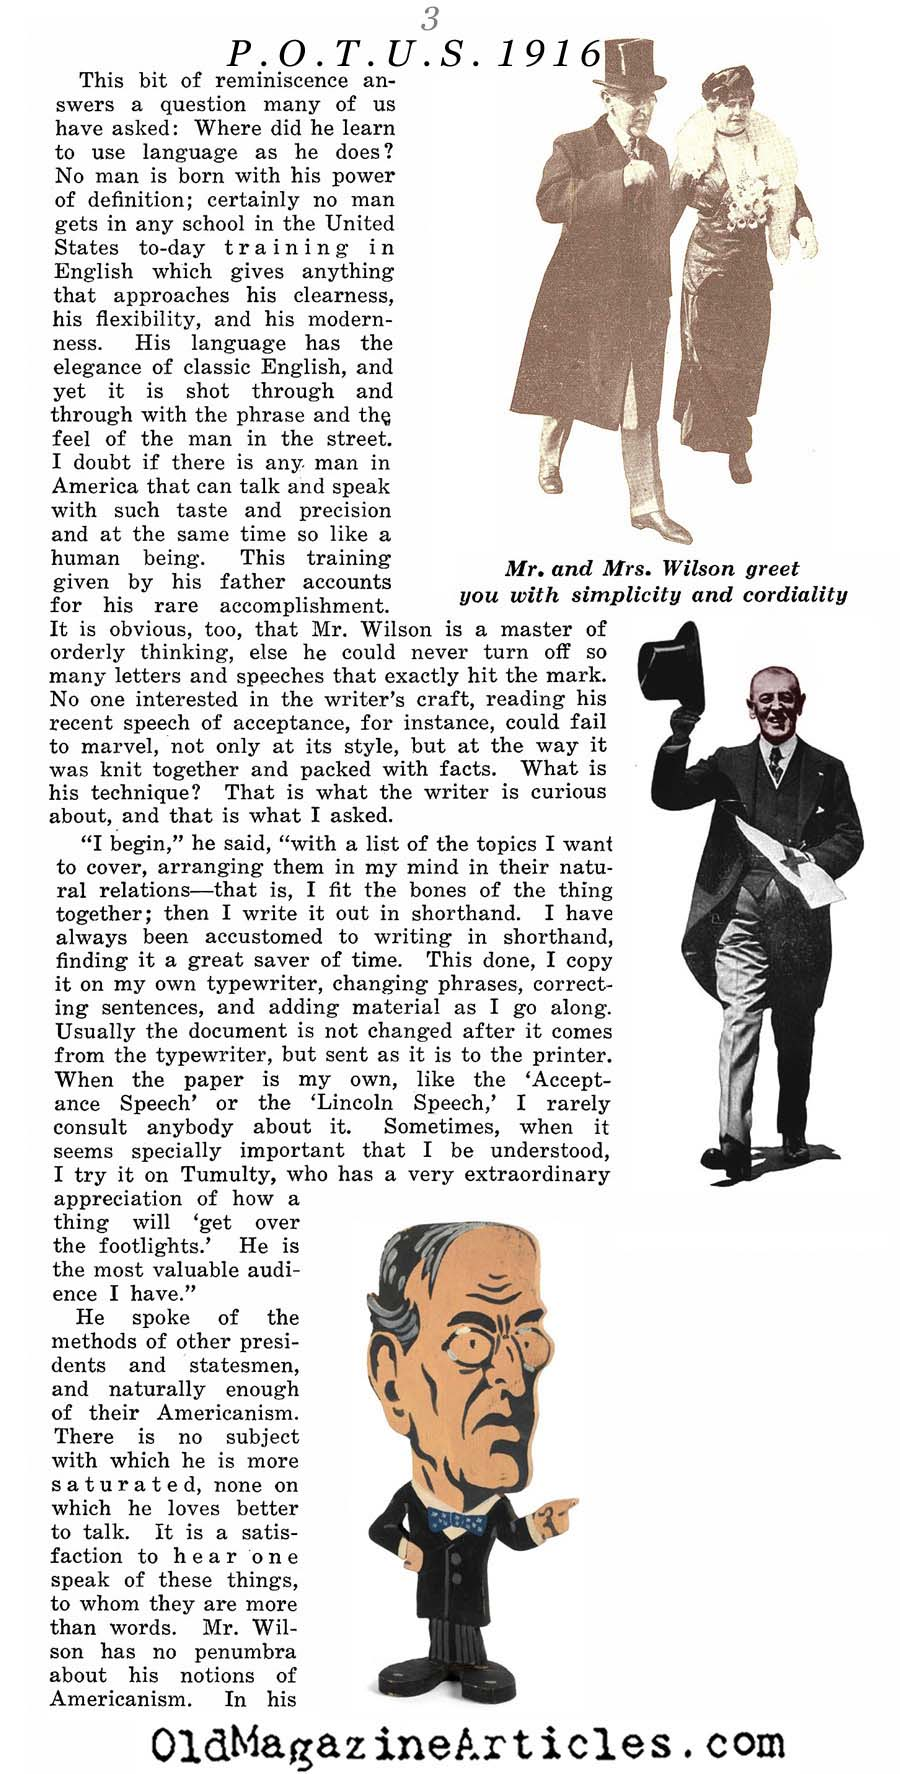 An Interview with Woodrow Wilson (Collier;s Magazine, 1916)